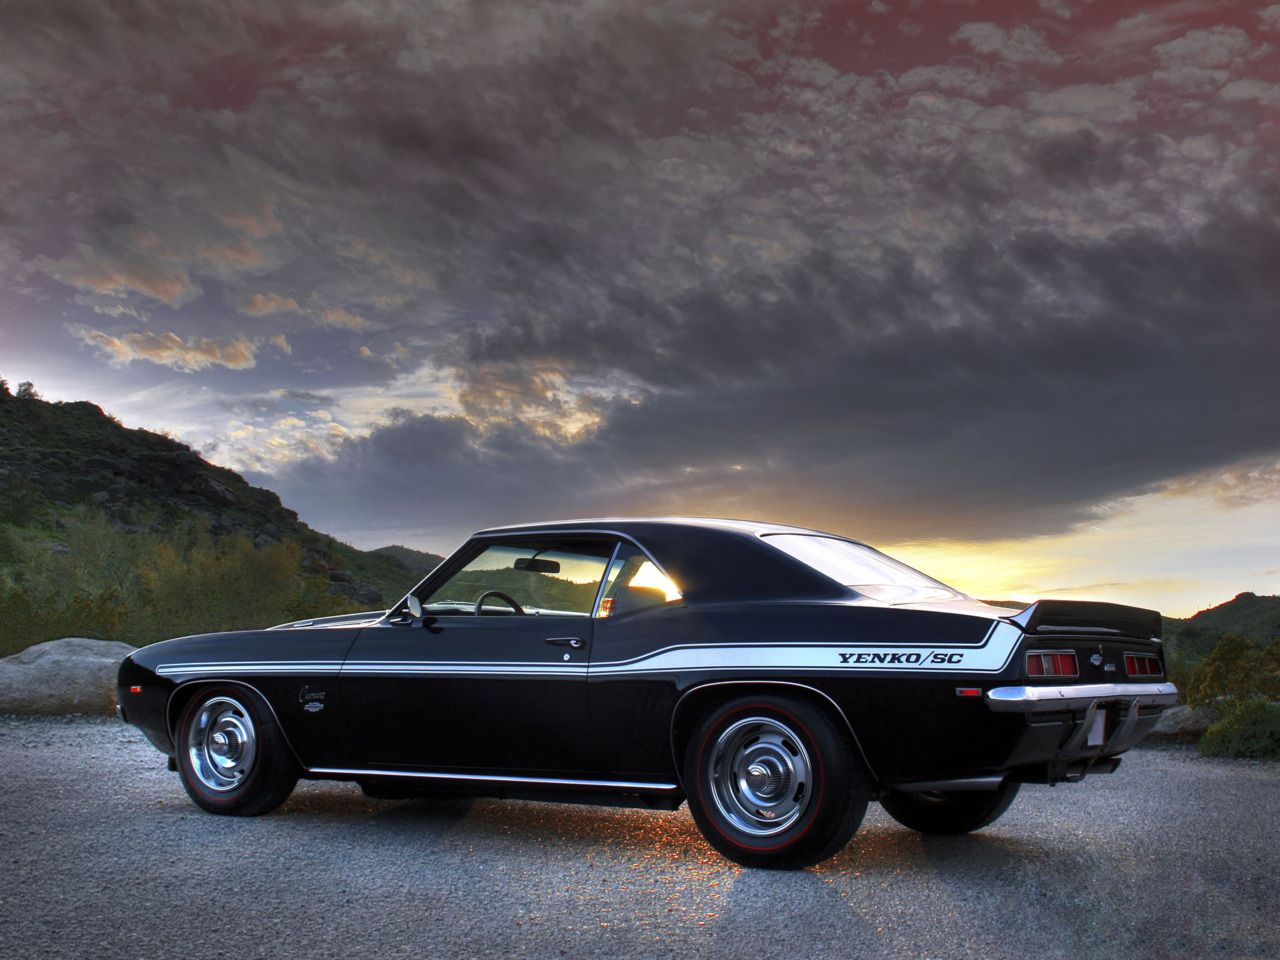 Camaro Yenko Muscle Cars Pinterest Cars Muscles And